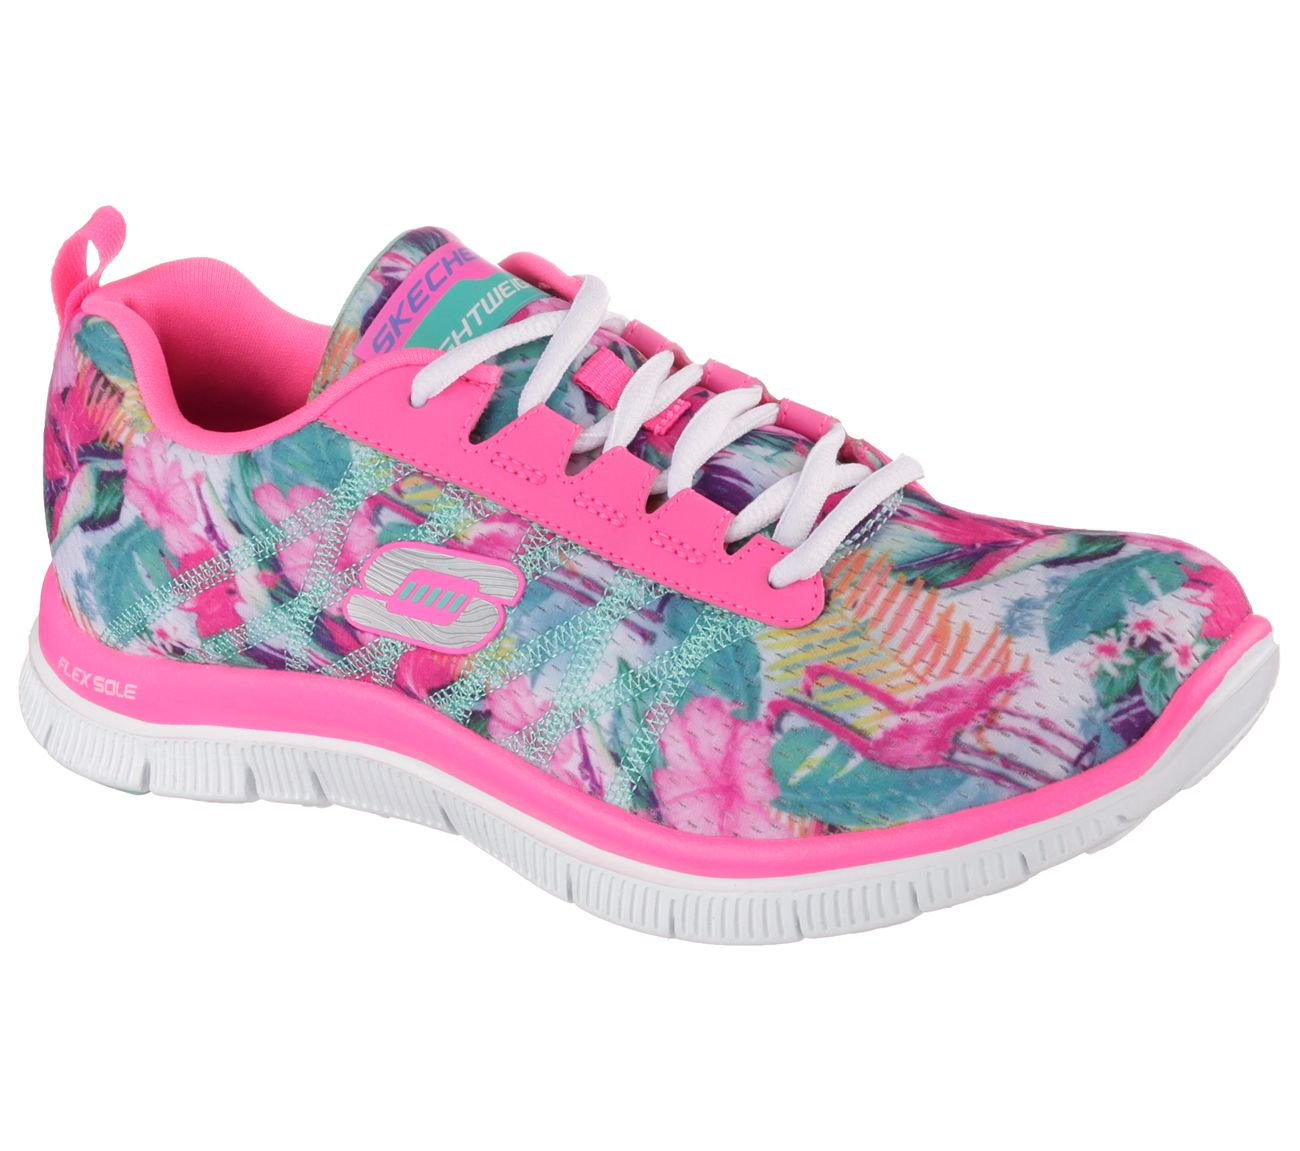 3766e96a7b77 Buy SKECHERS Flex Appeal - Floral BloomFlex Appeal Shoes only £62.00